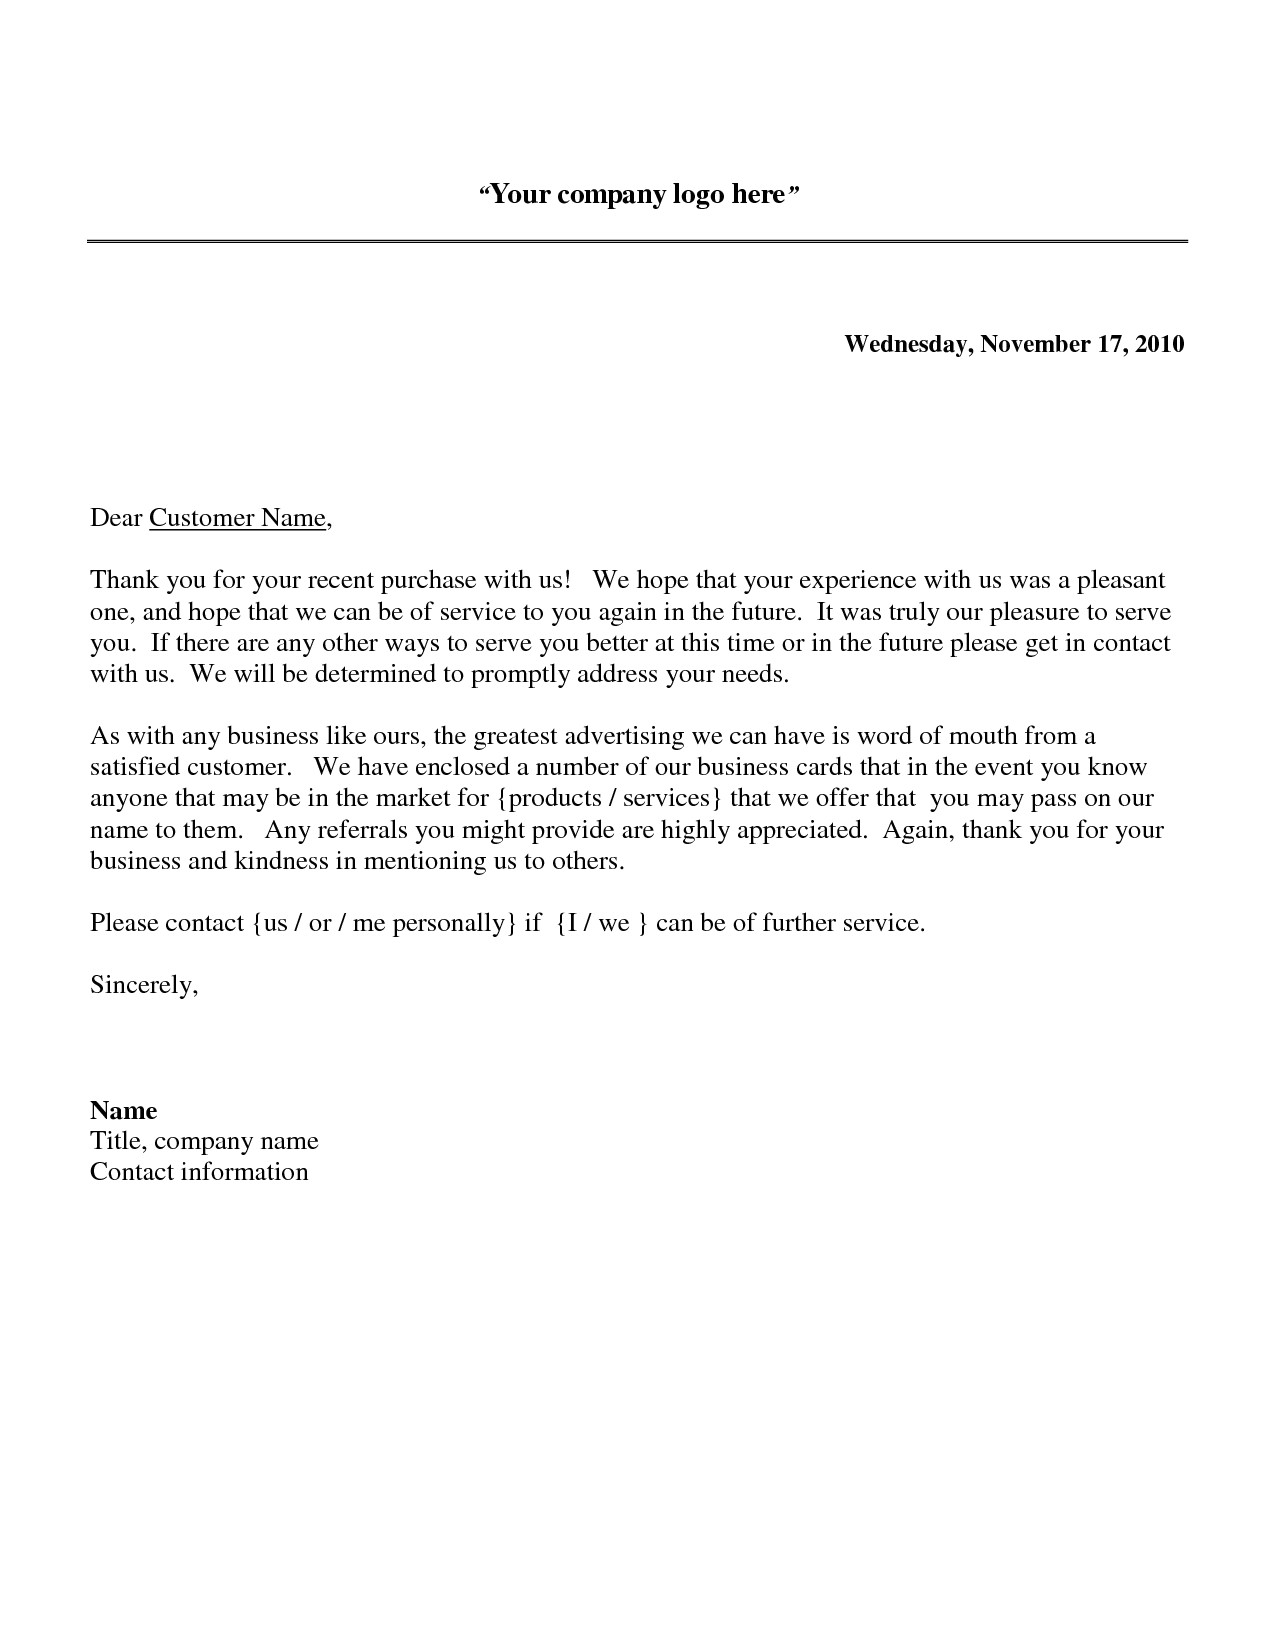 Thank You for Your Business Email Template Business Letter Thank You for Your Business the Letter